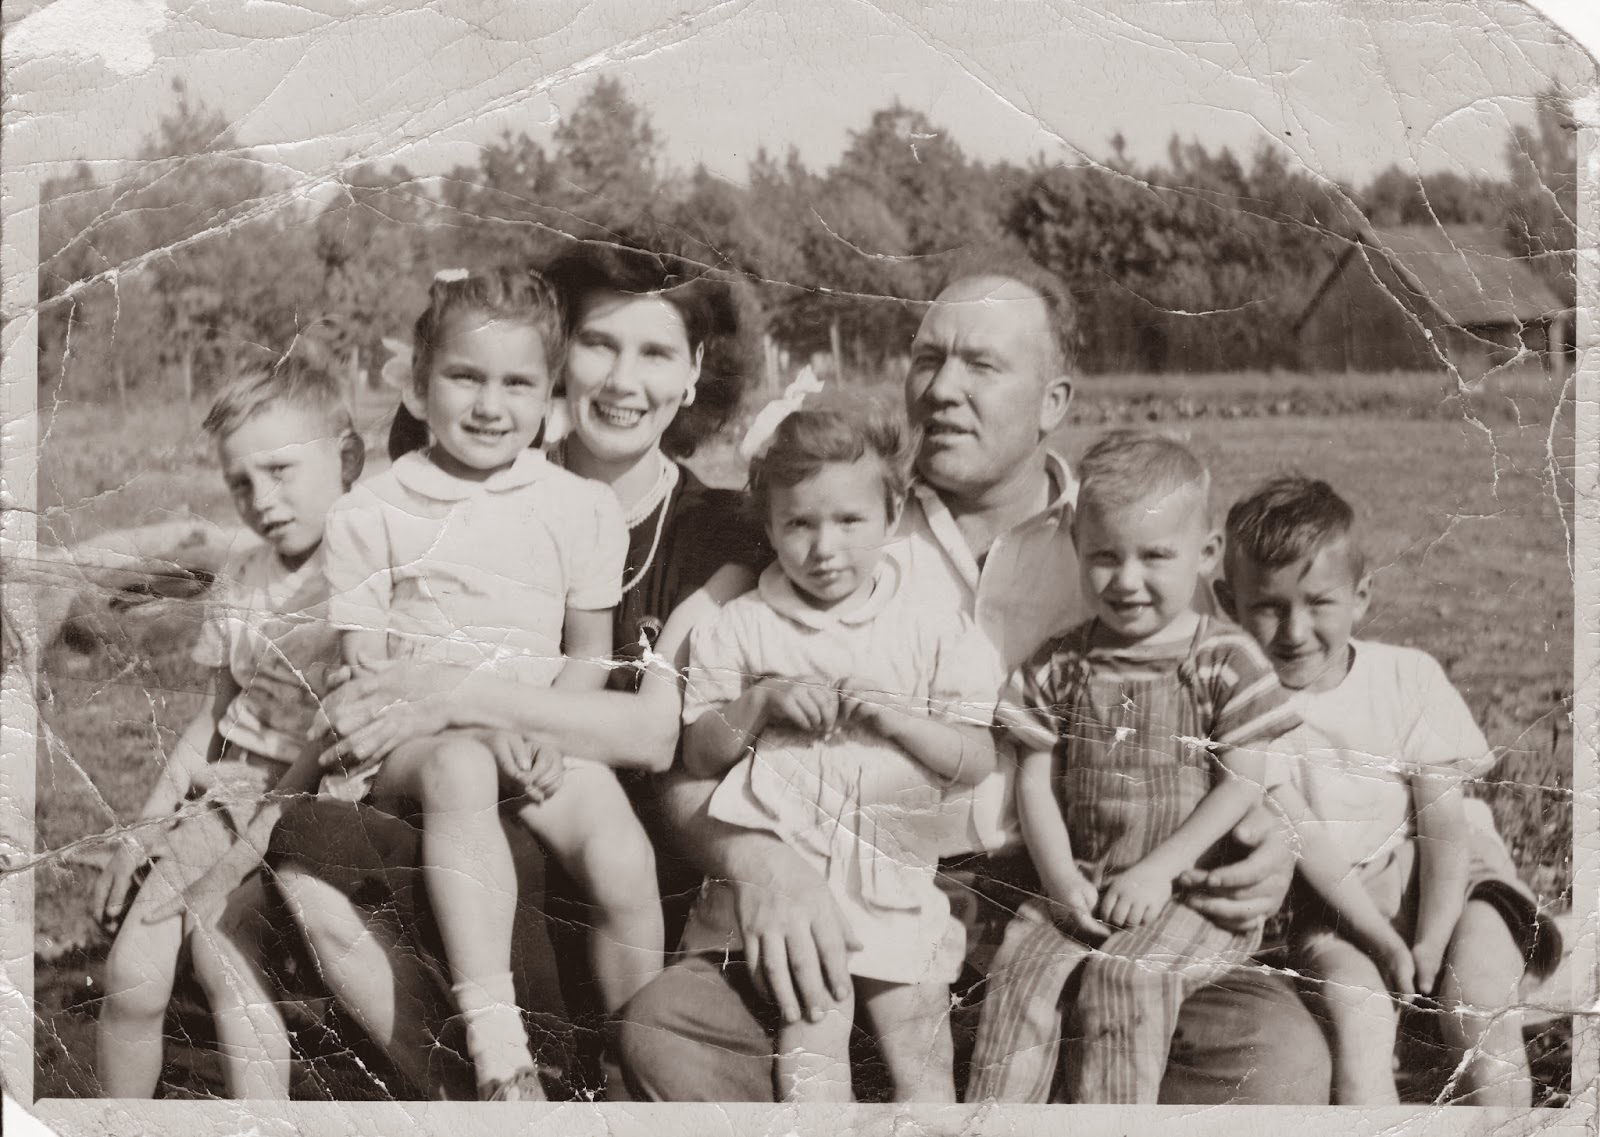 Patriarchal family: the crisis in the traditional structure of society 14